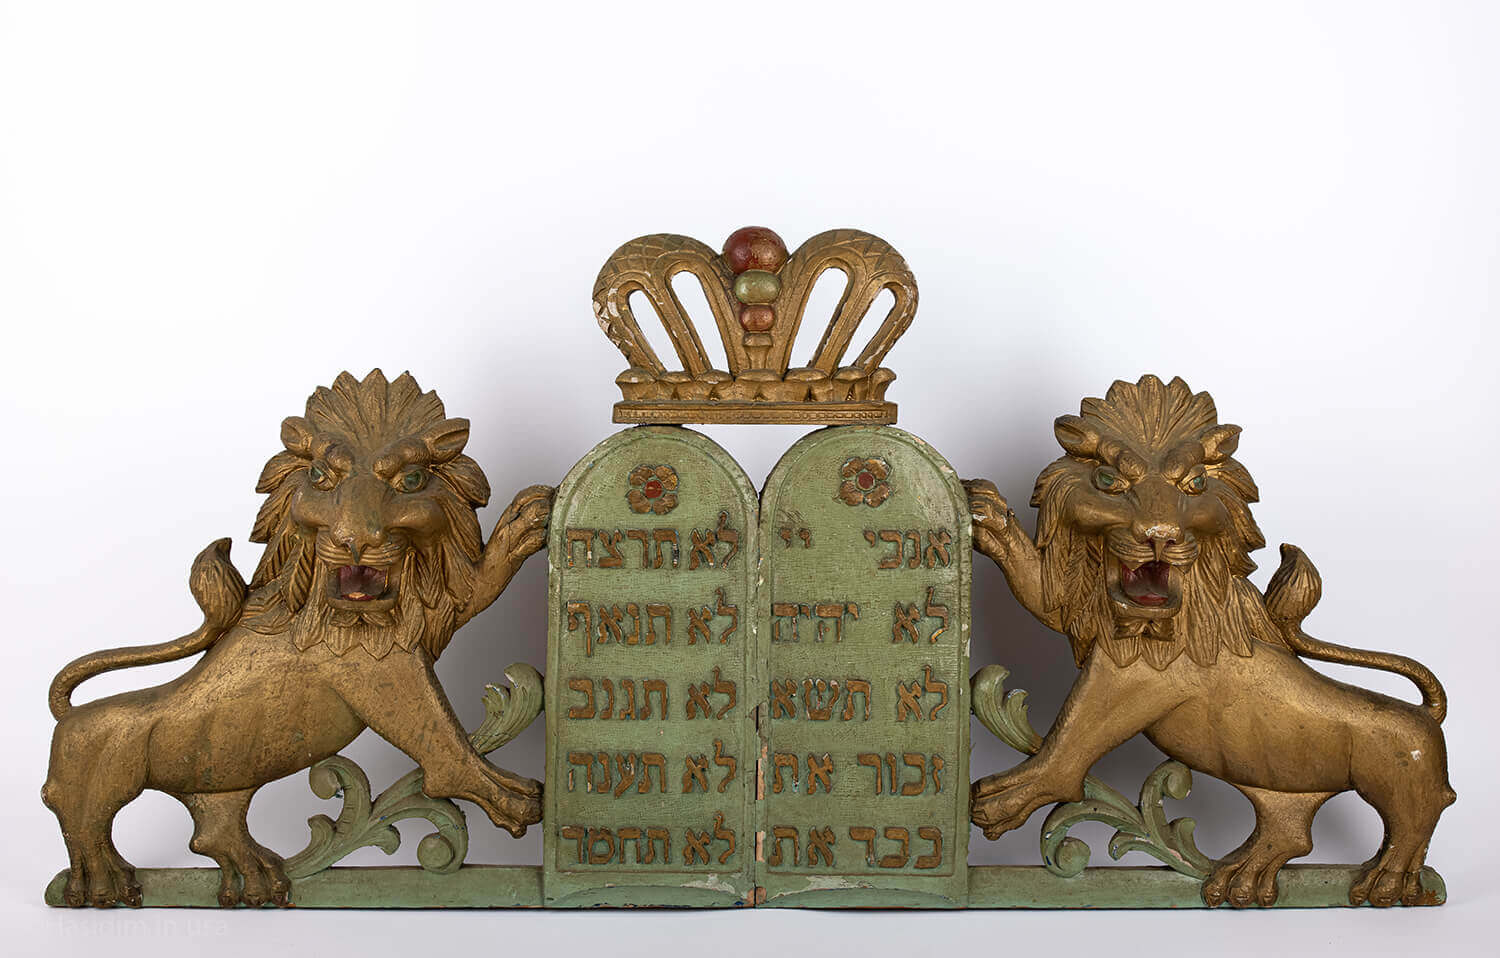 045. A PAIR OF WOODEN LIONS AND DECALOGUE